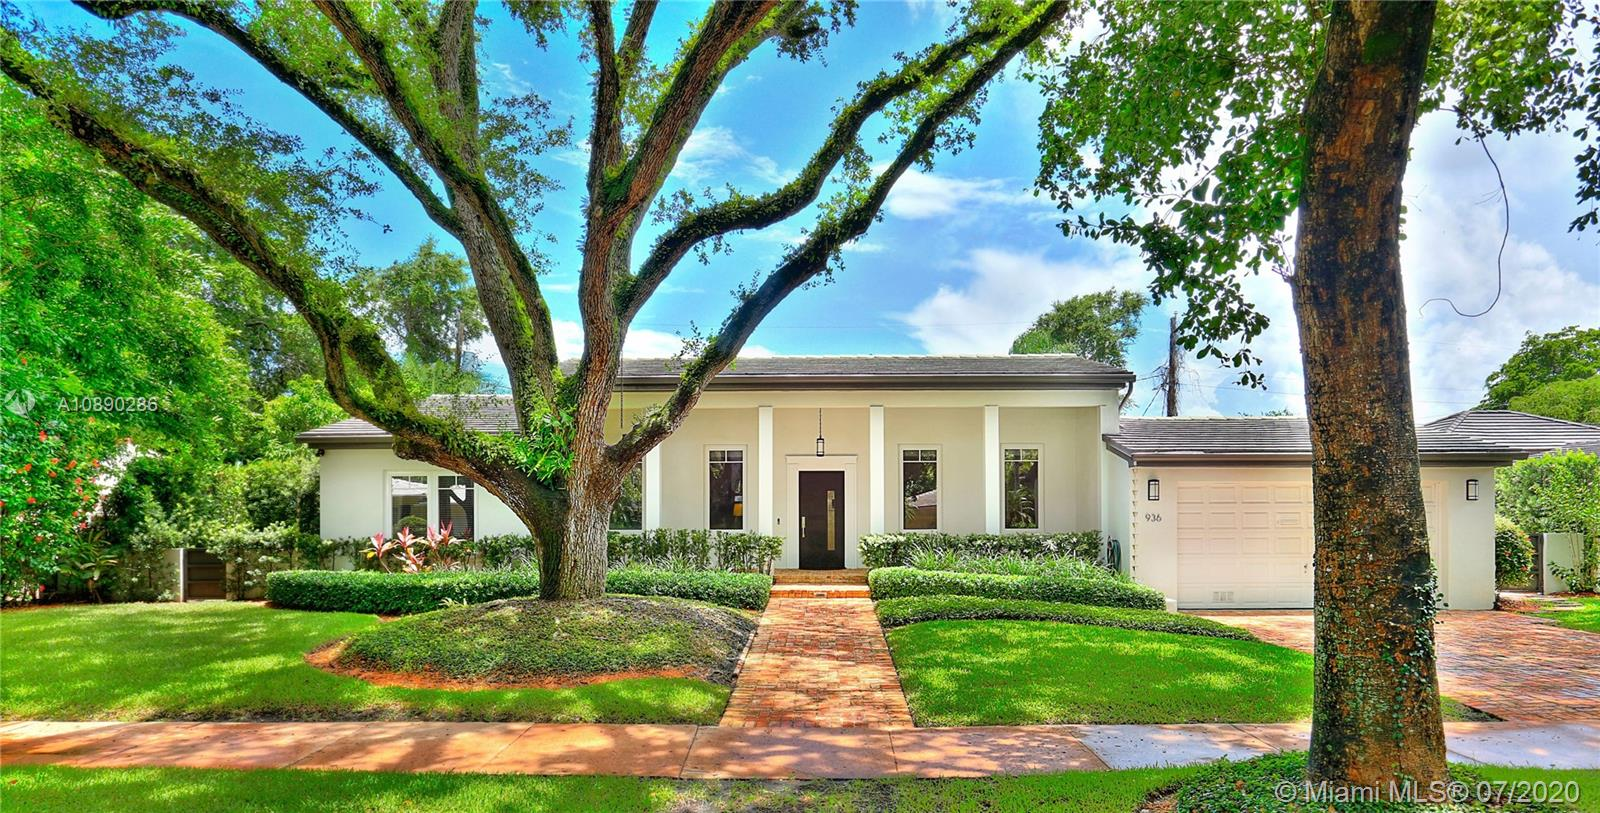 Absolutely beautiful South Gables Home! Contemporary colonial style home on prestigious & quiet street with majestic oaks on 12,000-SF lot. Lovingly restored & added onto, this home features 12-foot ceilings in the living & dining rooms, 2 family rooms overlooking the backyard oasis, gracious front porch with Chicago brick matching driveway & walkways, all impact doors & windows, & fireplace. Stunning new kitchen features a large eat-in island, gas range, SS appliances & modern white sleek wooden cabinets. Gorgeous backyard retreat offers a large covered porch overlooking the new pool with fountain, & spacious yard. Master suite boasts vaulted ceilings, walk-in closet & lux bath. Split floor plan with 2 bedrooms on one side, & master & 1 bedroom on the other, laundry room, & 2-car garage.